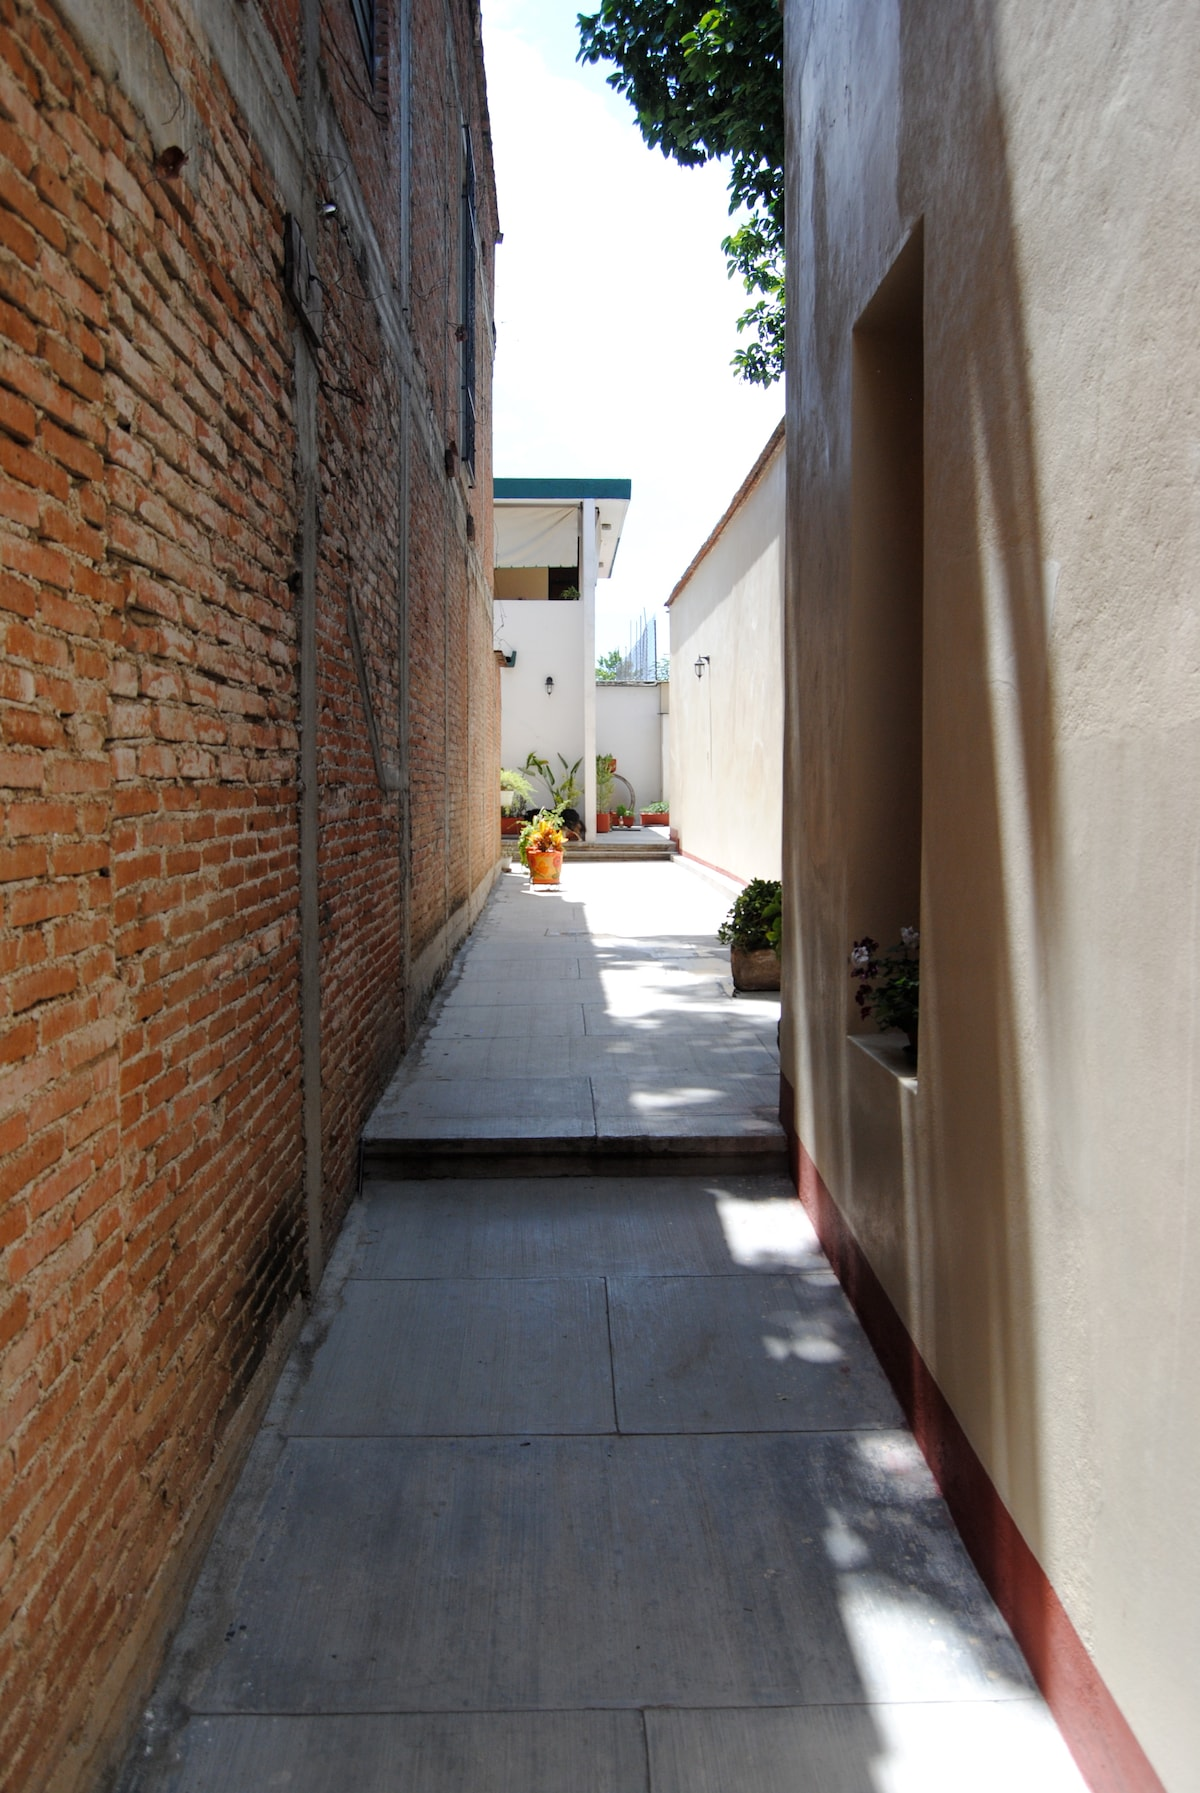 Walkway to the house.